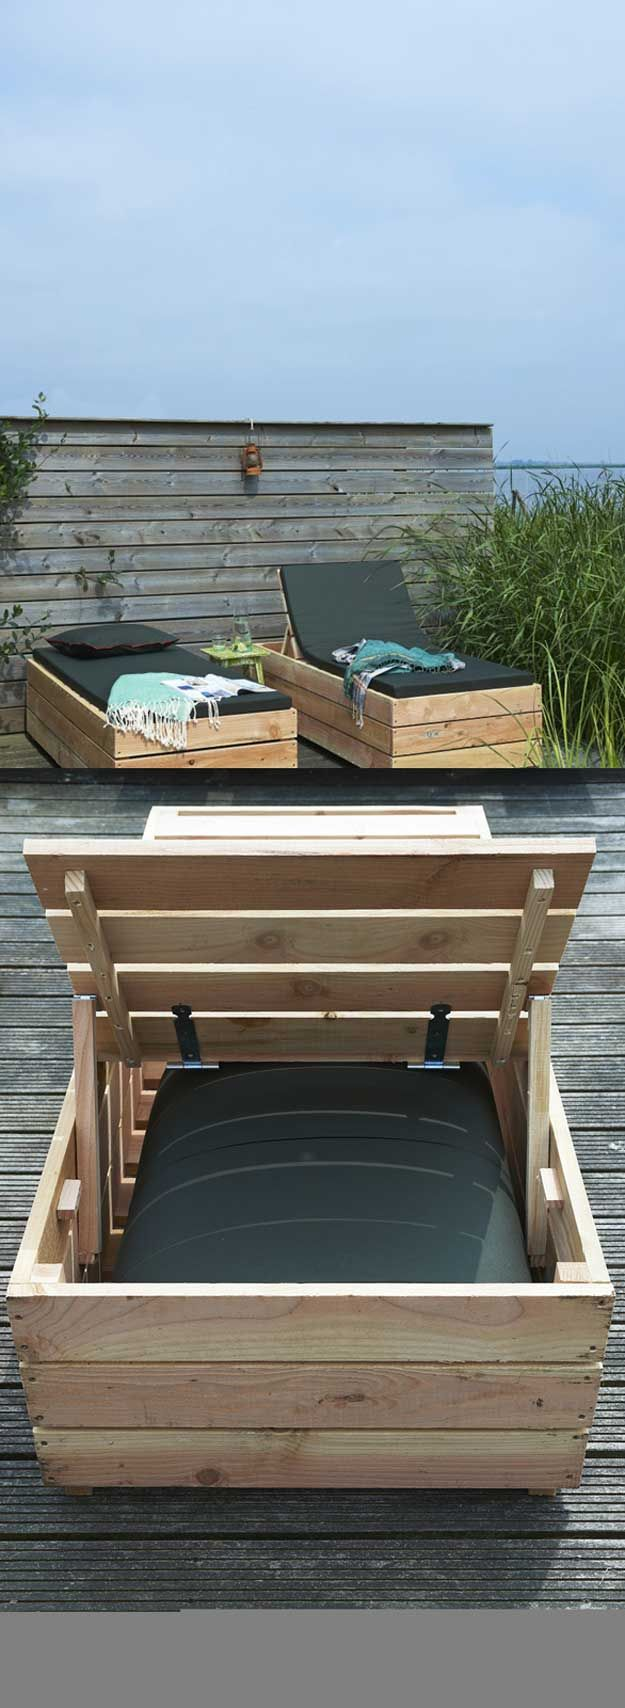 Daybed lounger diy outdoor pallet furniture projects